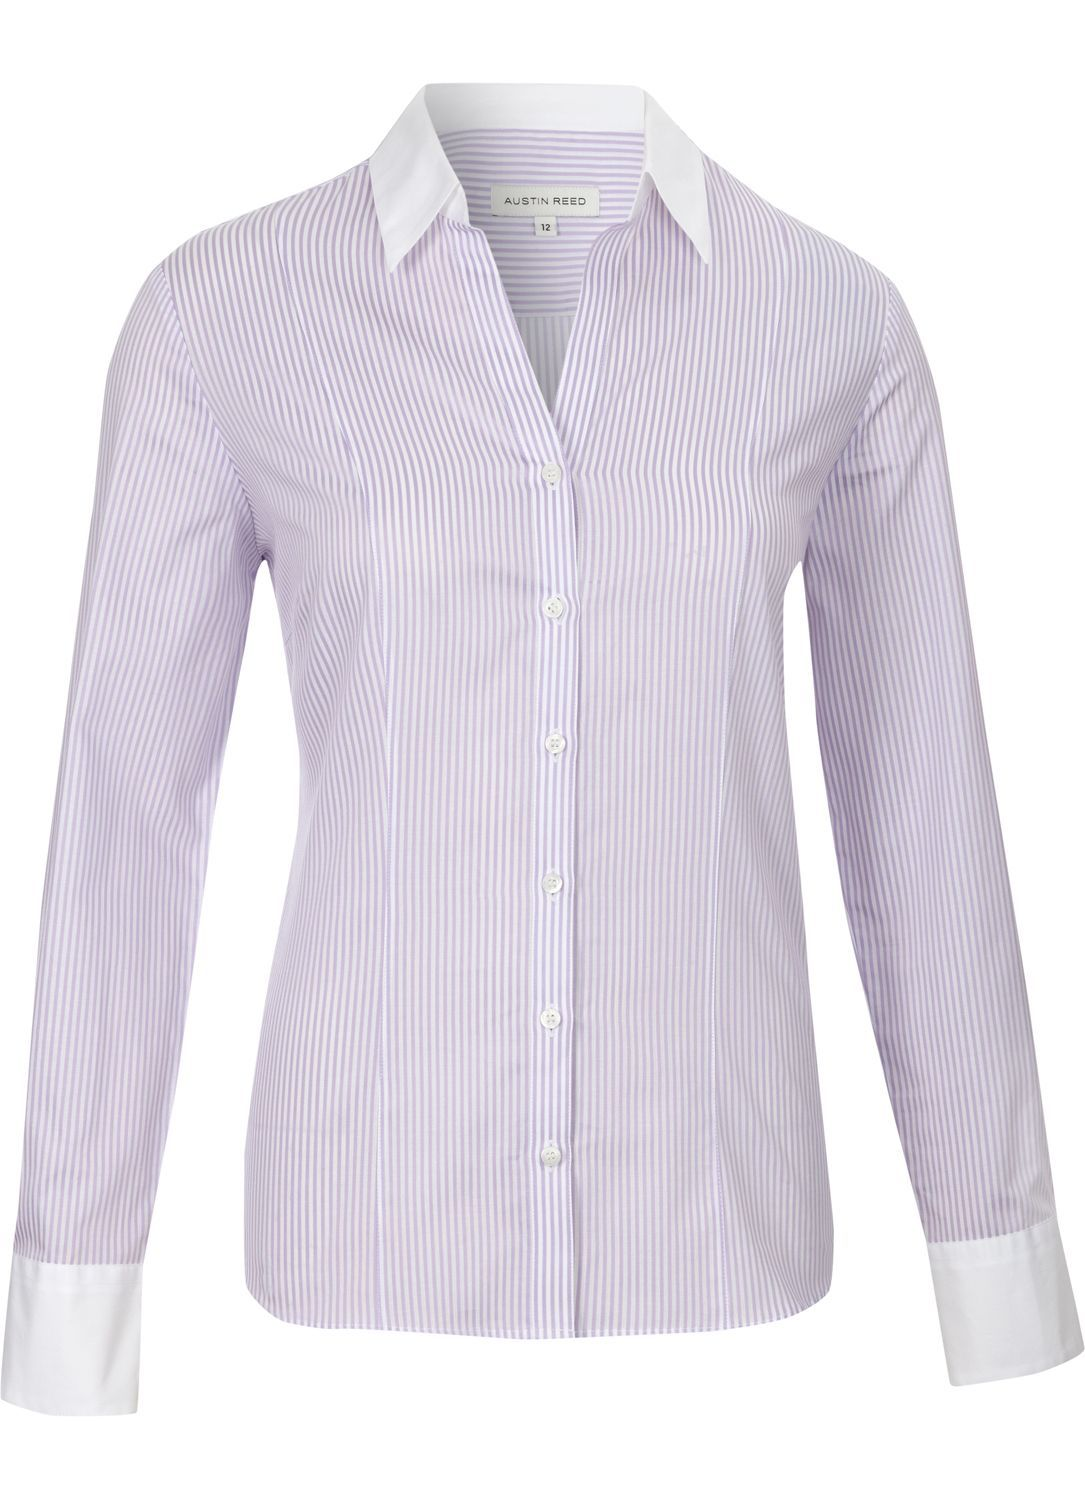 Women's Lilac Bengal Stripe Shirt, Lilac - neckline: shirt collar/peter pan/zip with opening; pattern: horizontal stripes, vertical stripes, pinstripe; waist detail: fitted waist; style: shirt; bust detail: buttons at bust (in middle at breastbone)/zip detail at bust; predominant colour: lilac; occasions: work; length: standard; fibres: cotton - 100%; fit: tailored/fitted; trends: pastels; sleeve length: long sleeve; sleeve style: standard; pattern type: fabric; pattern size: standard